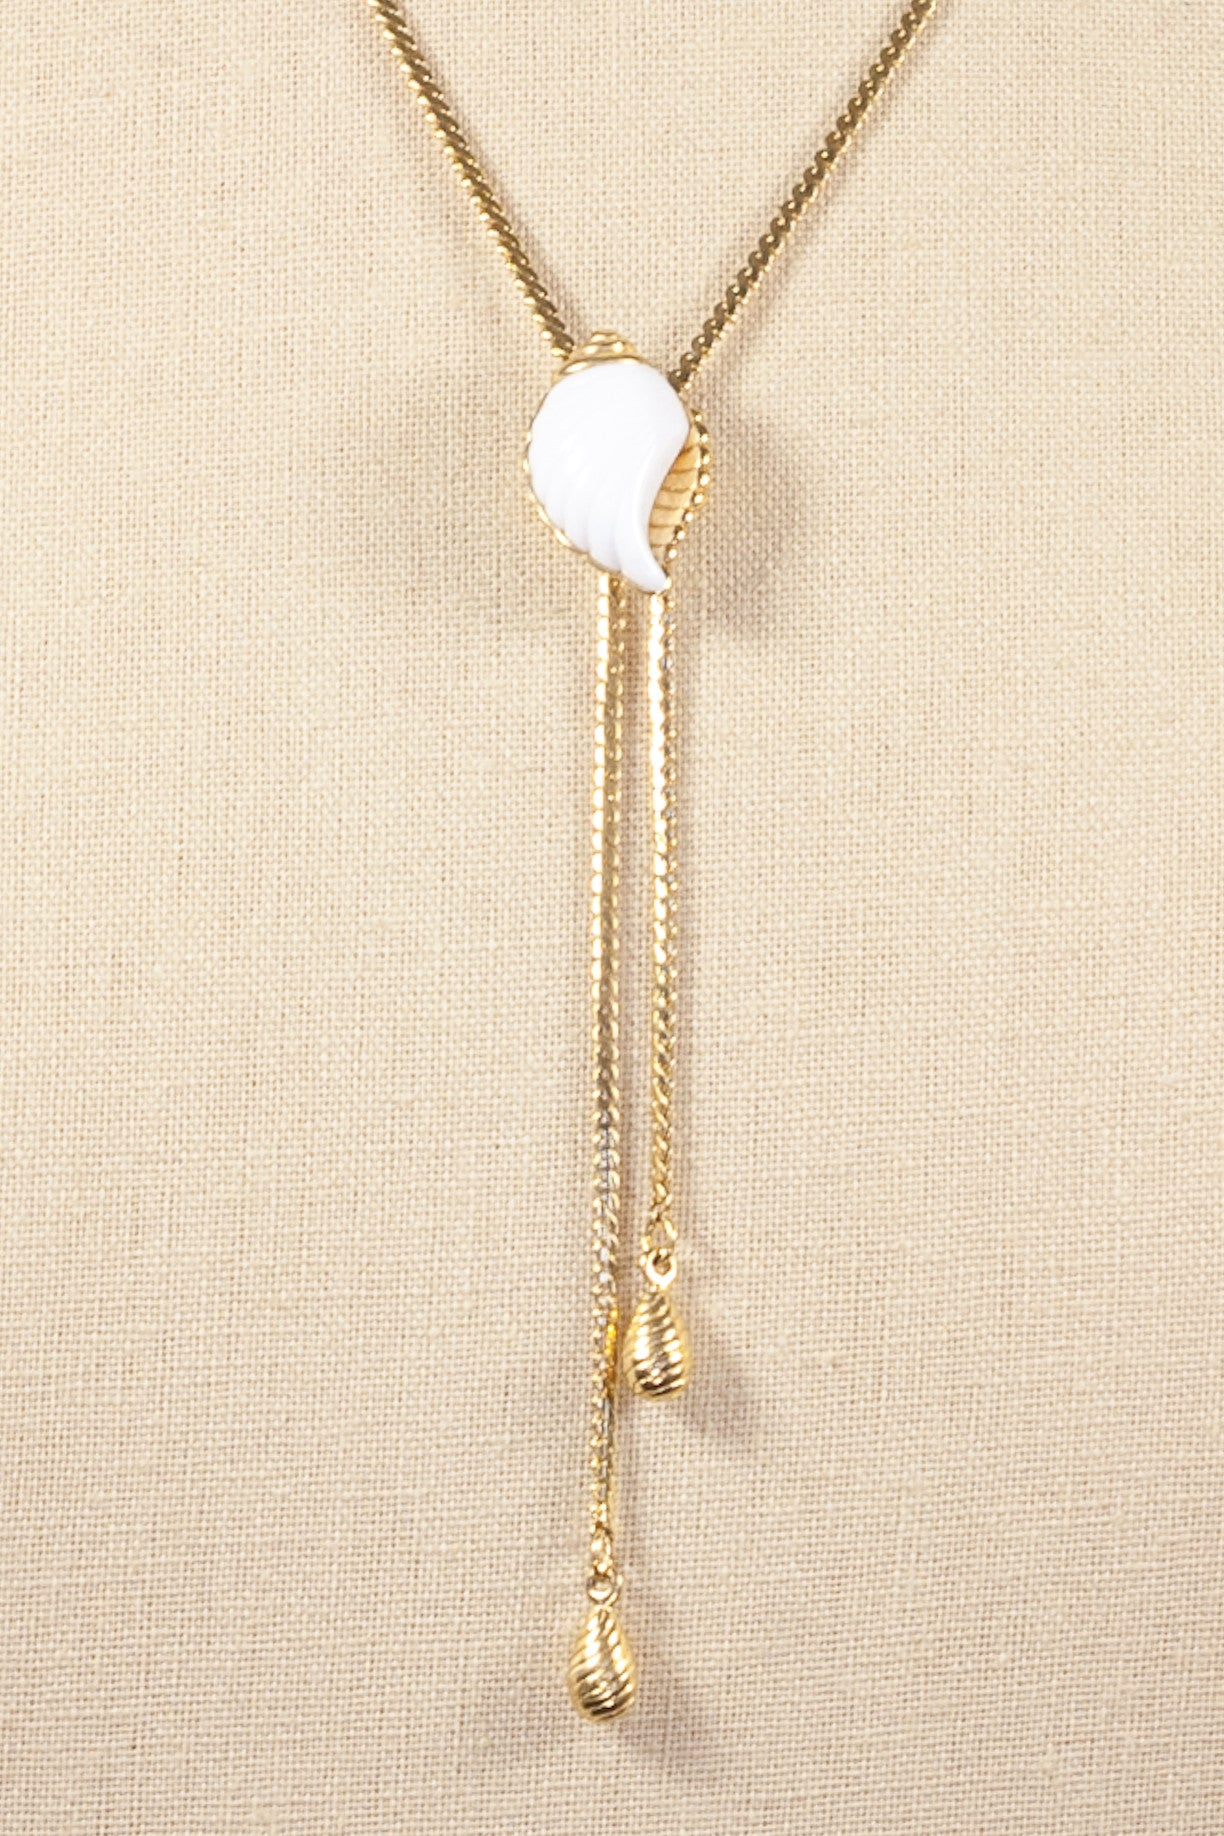 80's__Avon__Seashell Lariat Necklace